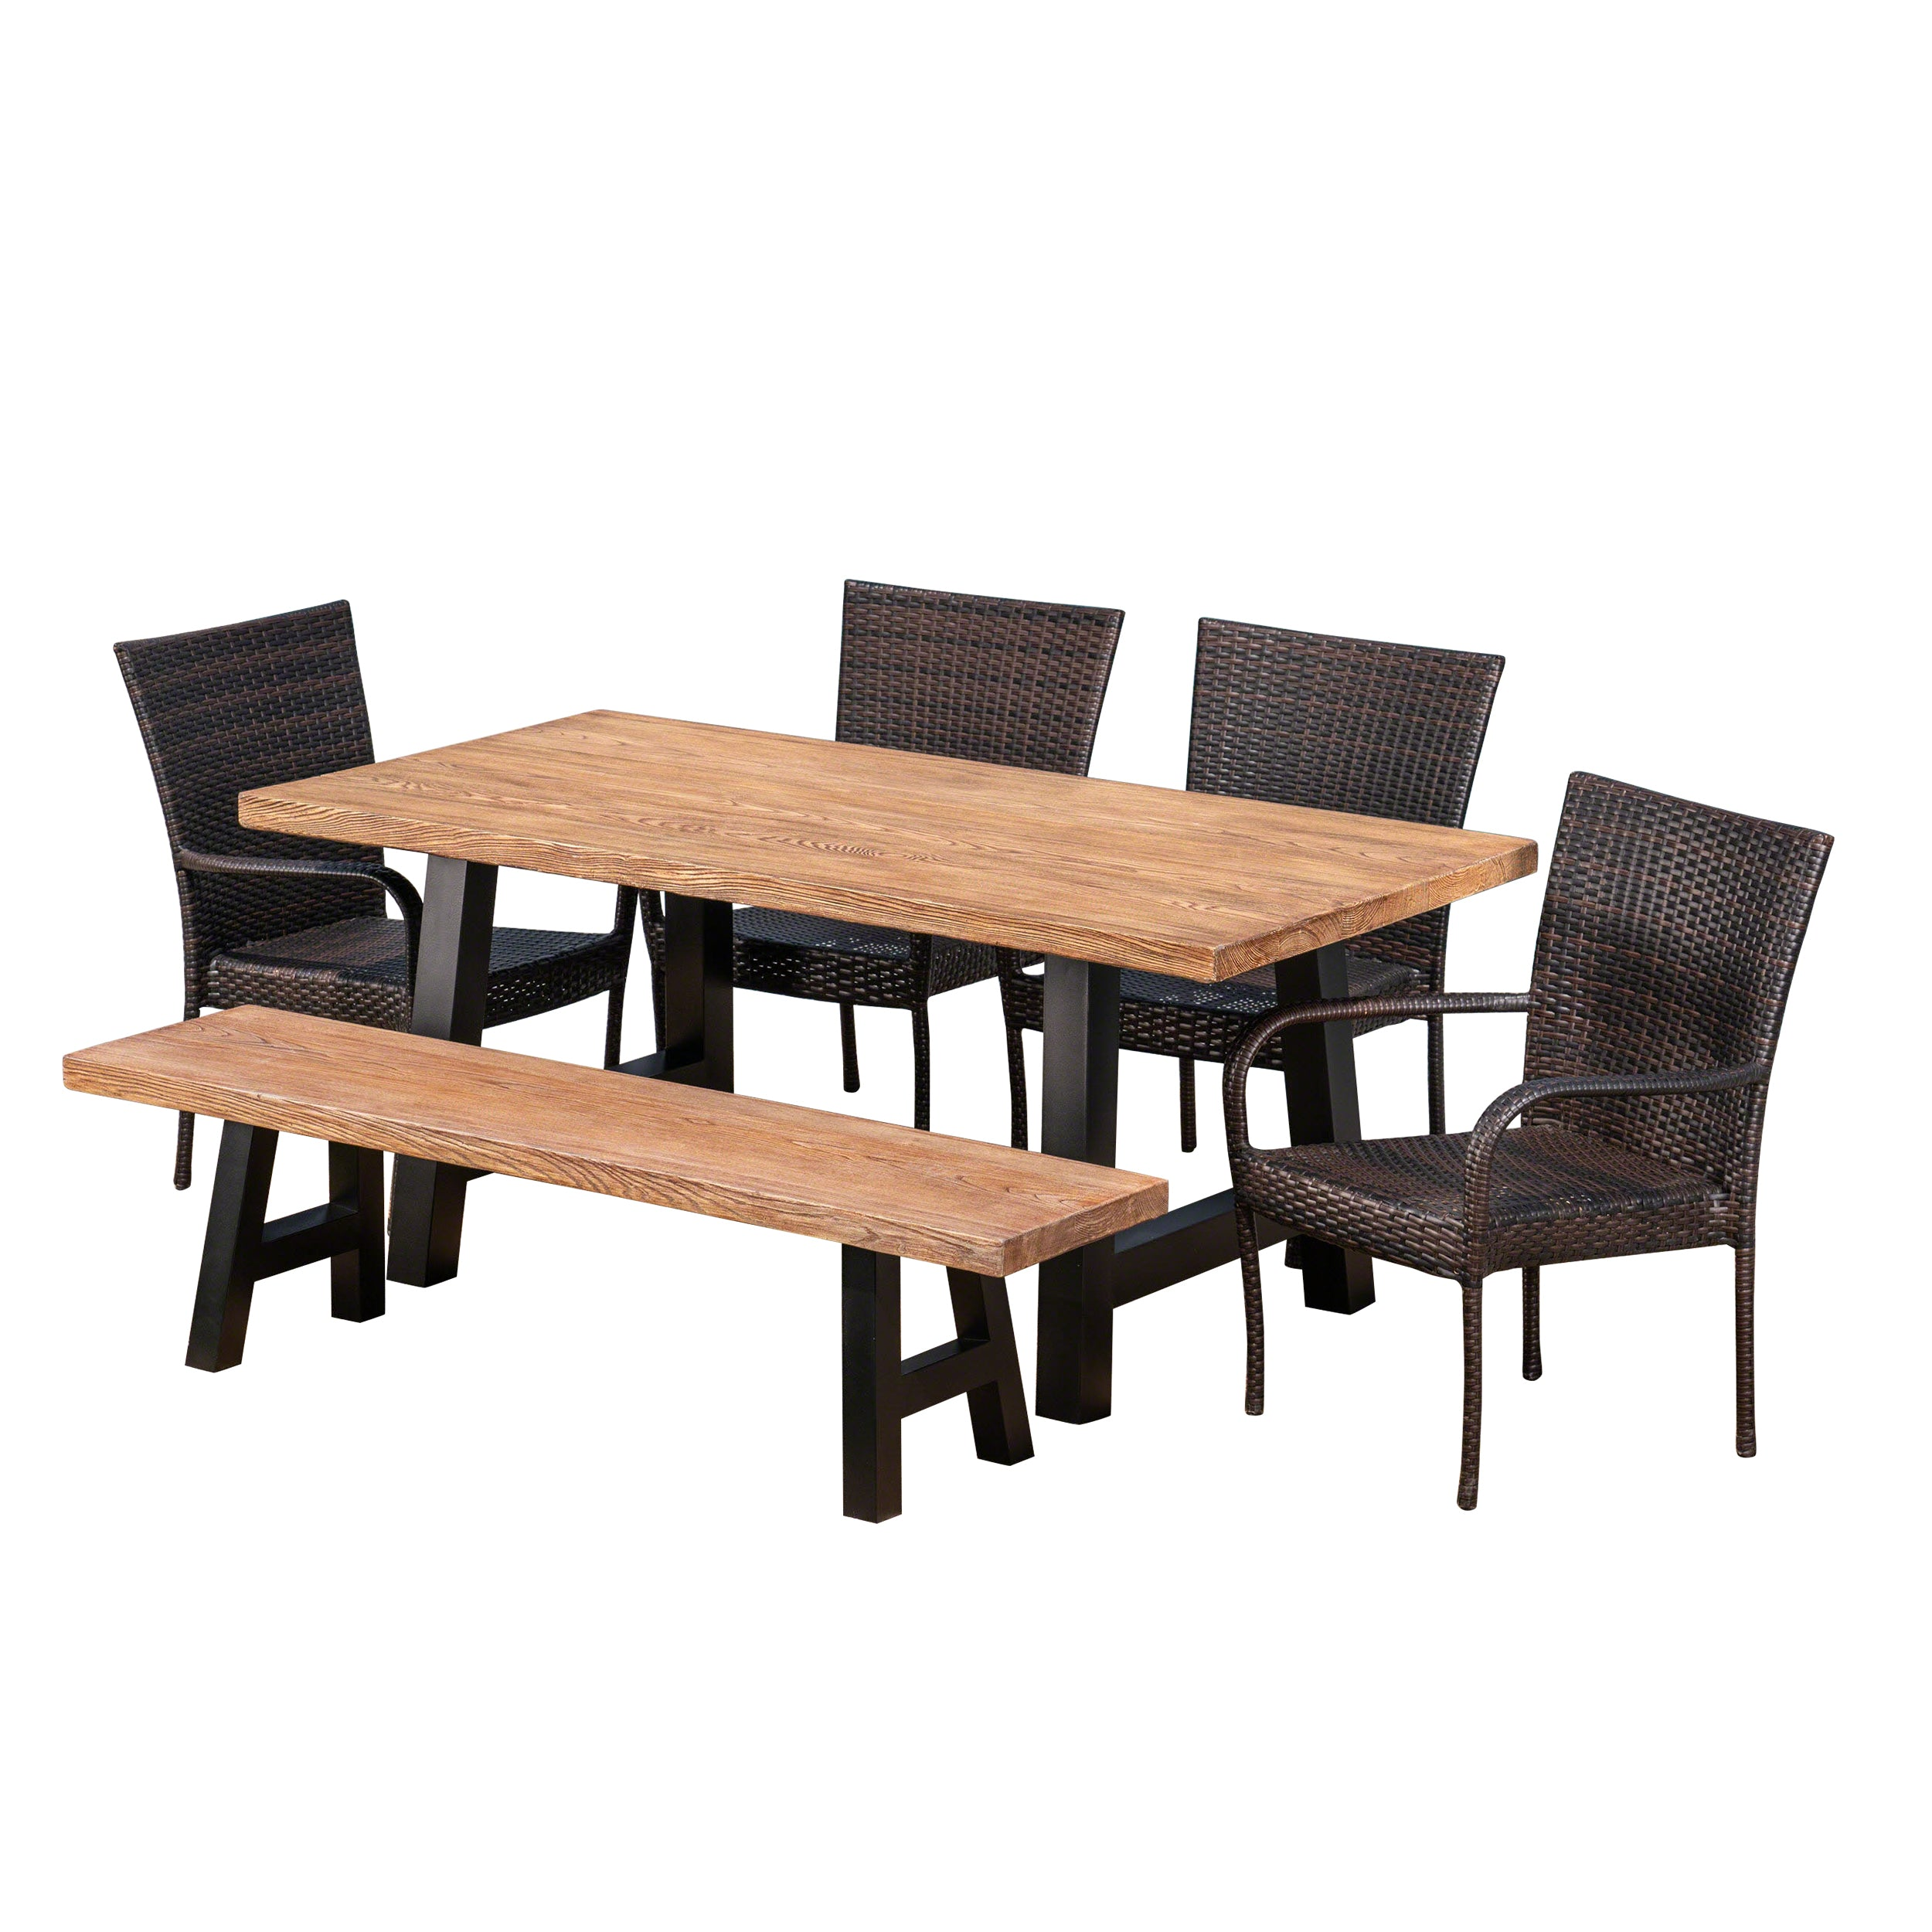 Allison Outdoor 6 Piece Stacking Wicker and Concrete Lightweight Dining Set with Natural Oak Finish in Multibrown Default Title